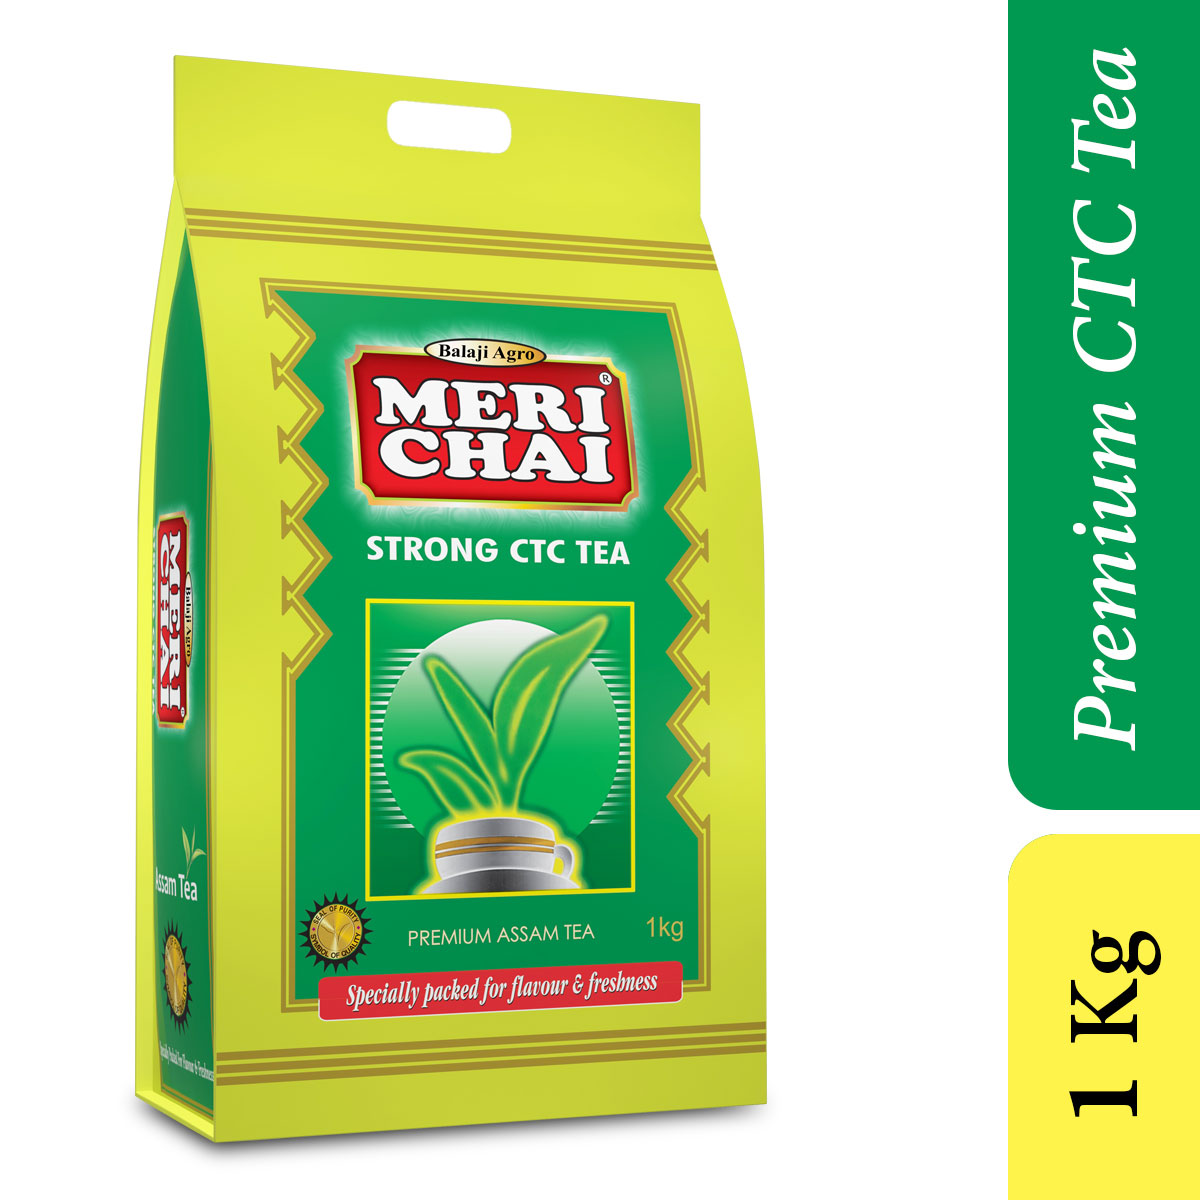 Meri Chai Strong CTC Tea